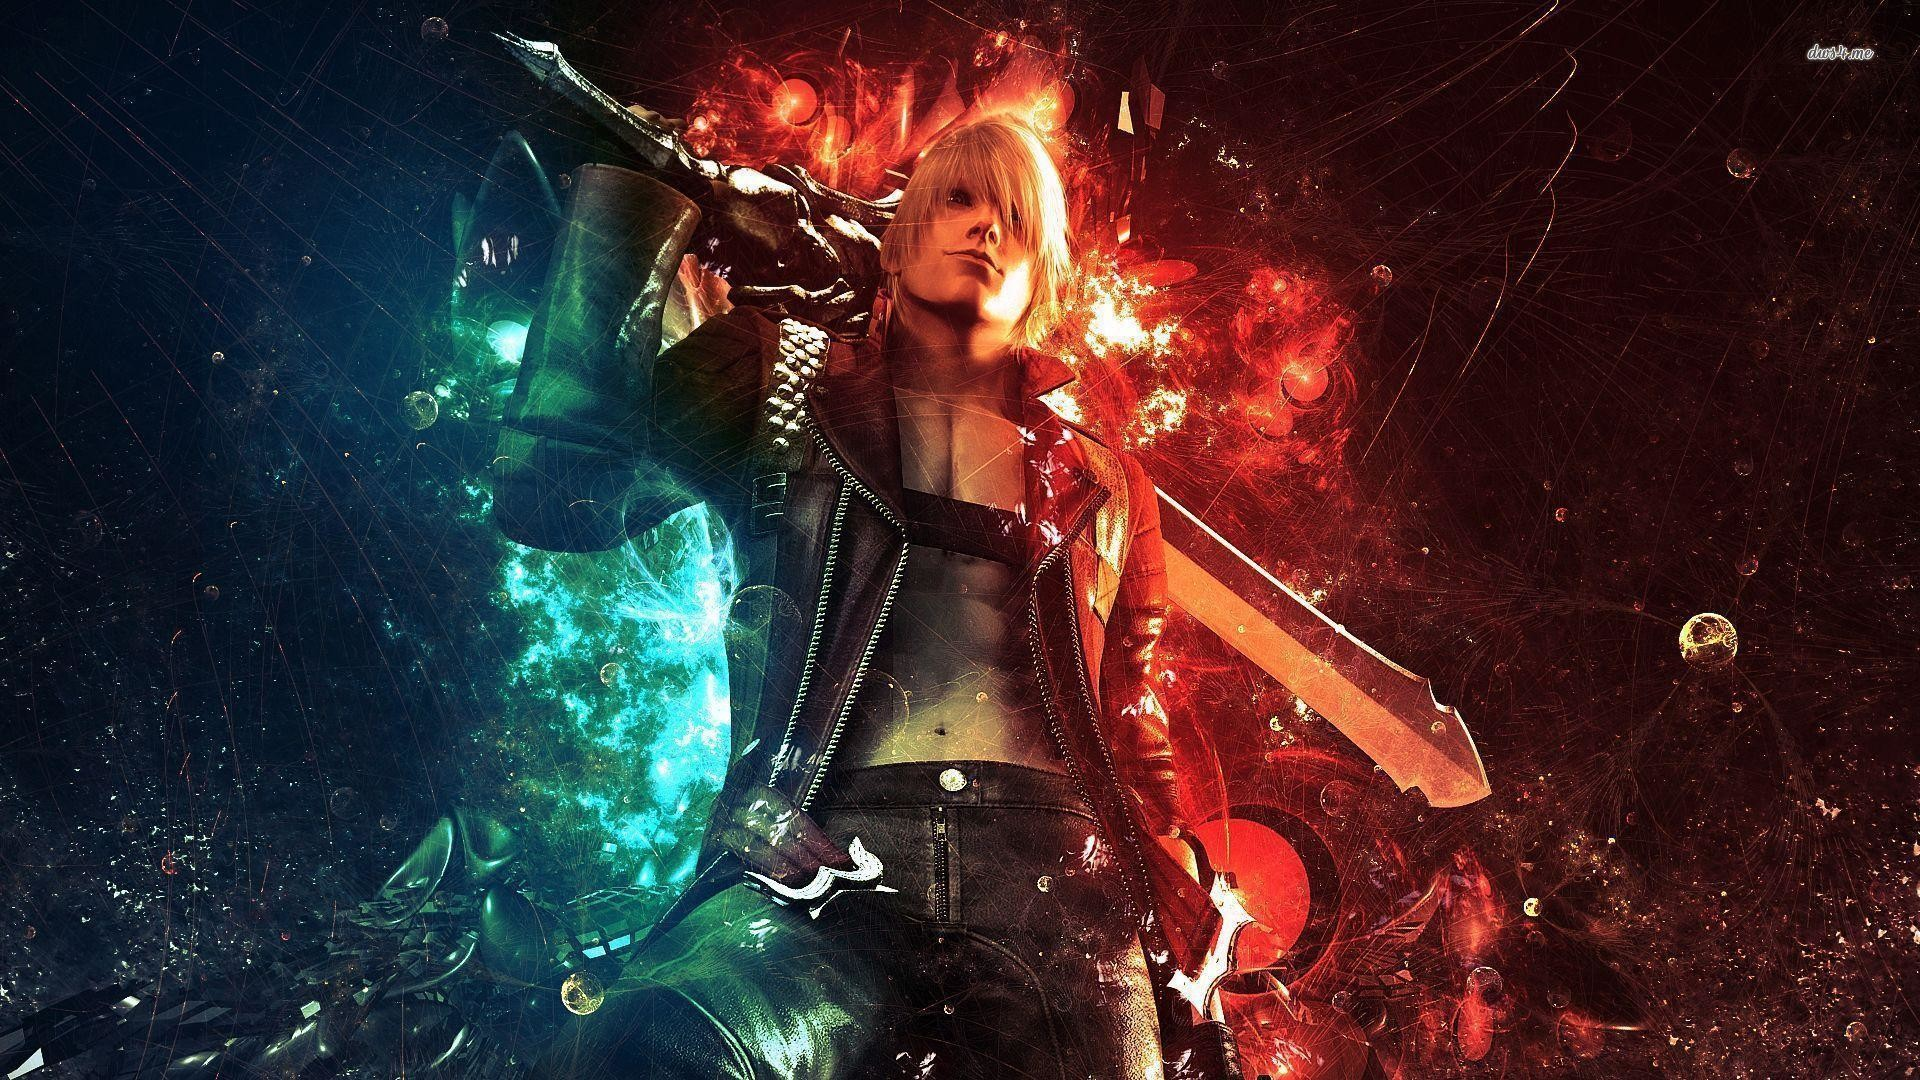 Devil may cry 3 wallpaper (62+ images).